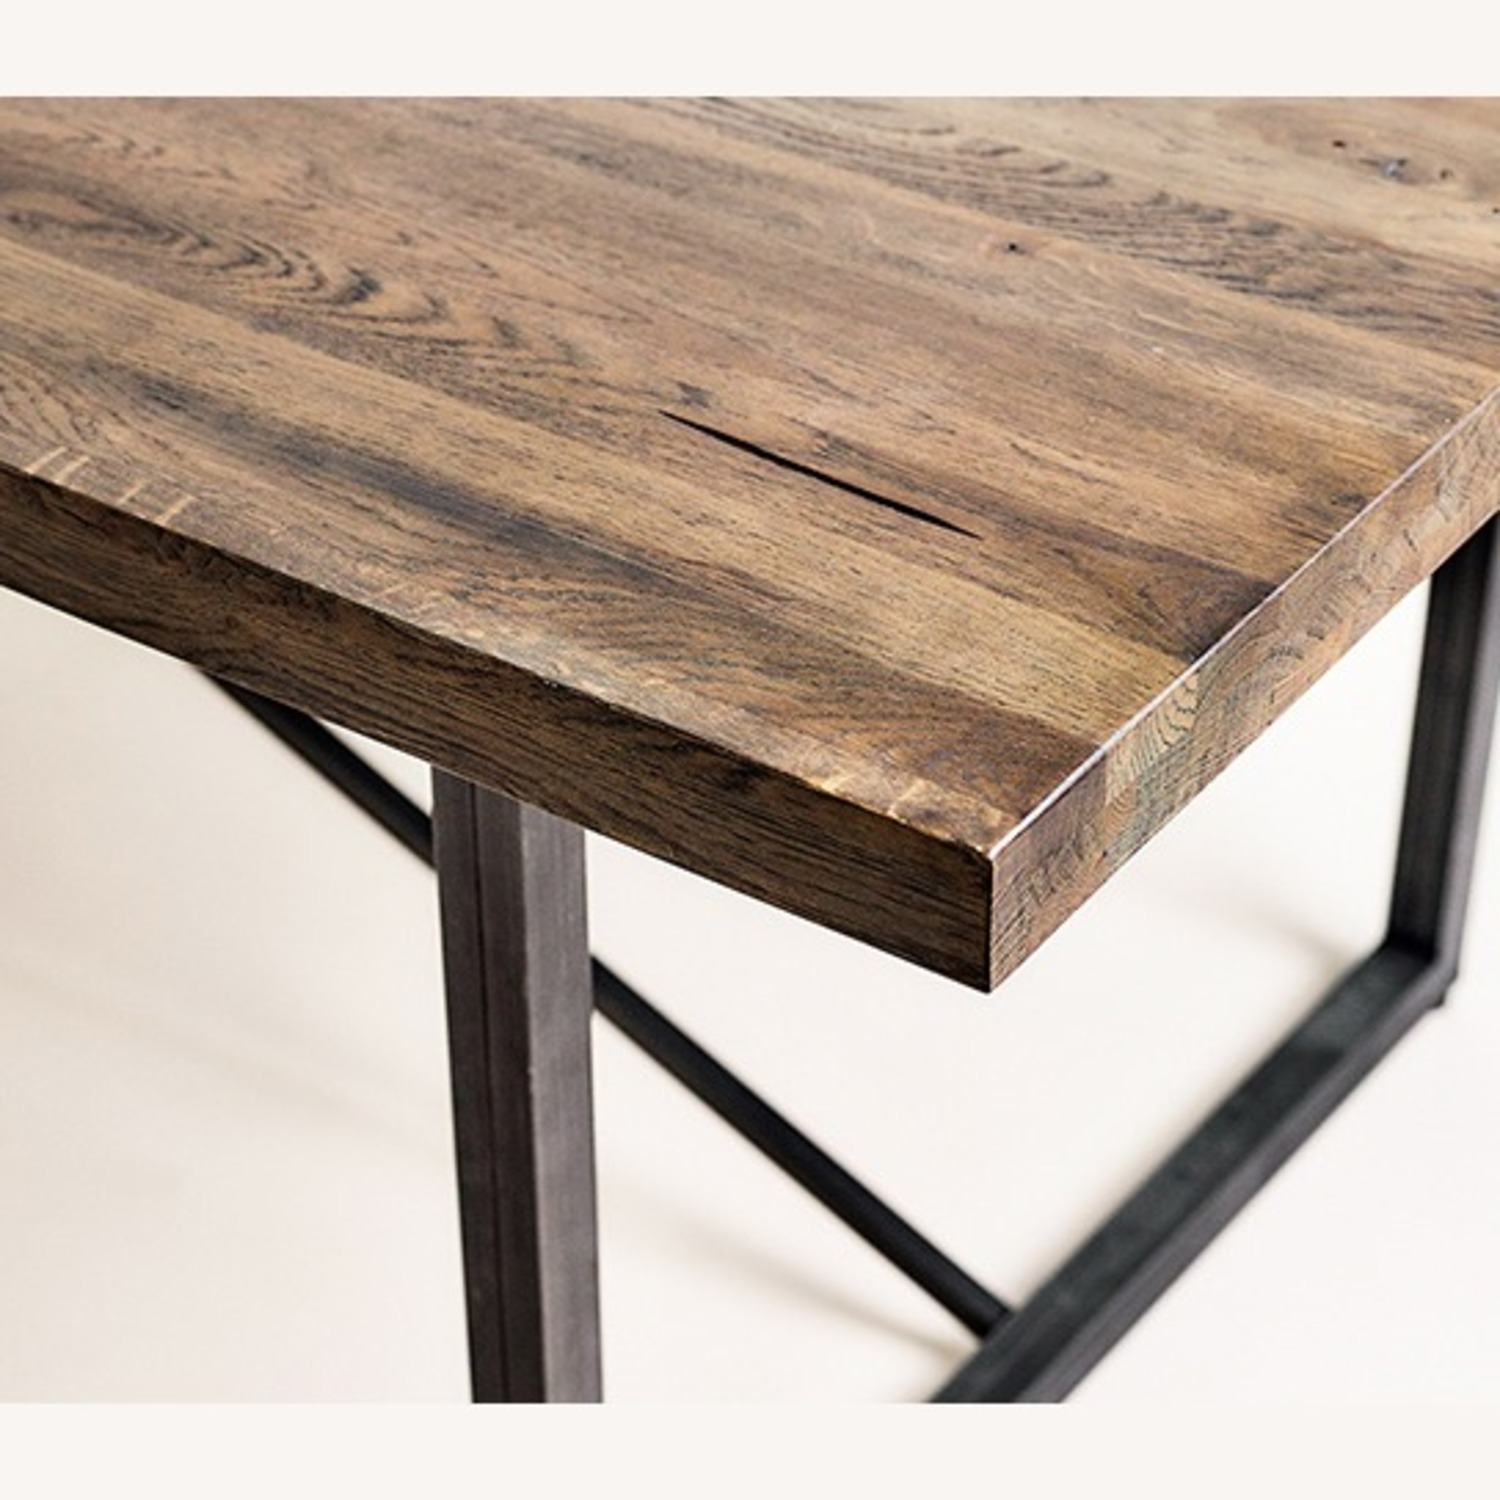 LH Imports Parula Dining Table - image-3